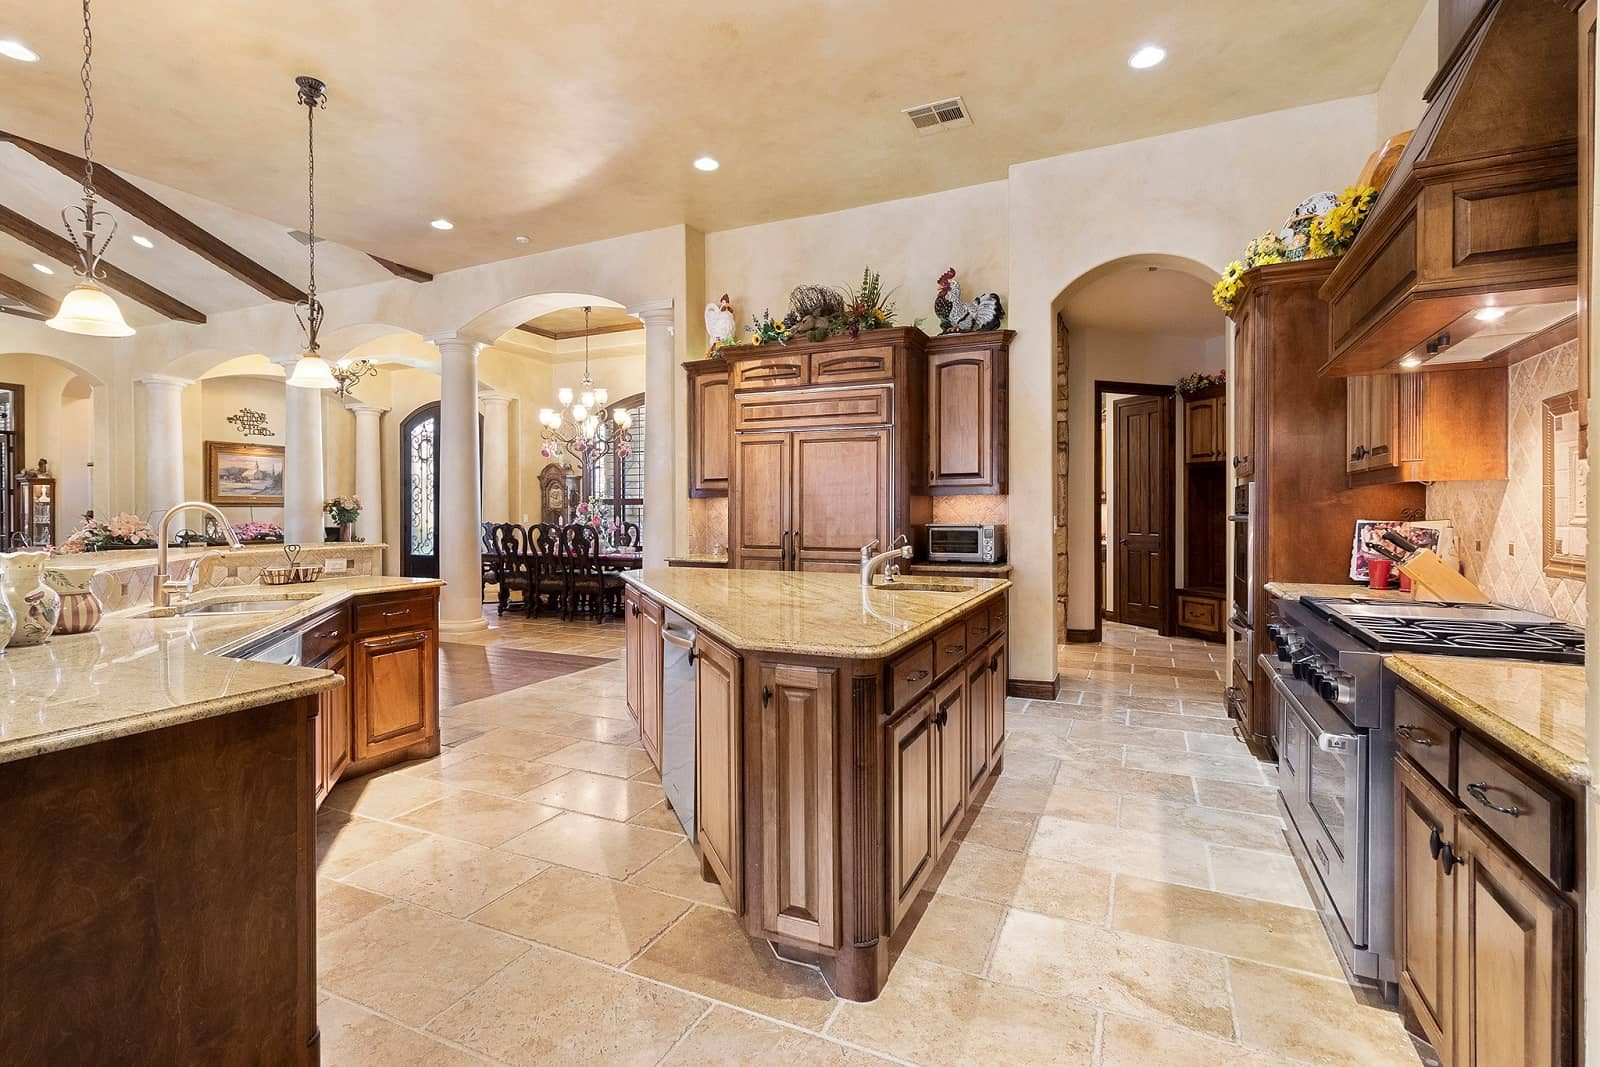 Real Estate Photography in Cedar Park - TX - Kitchen View